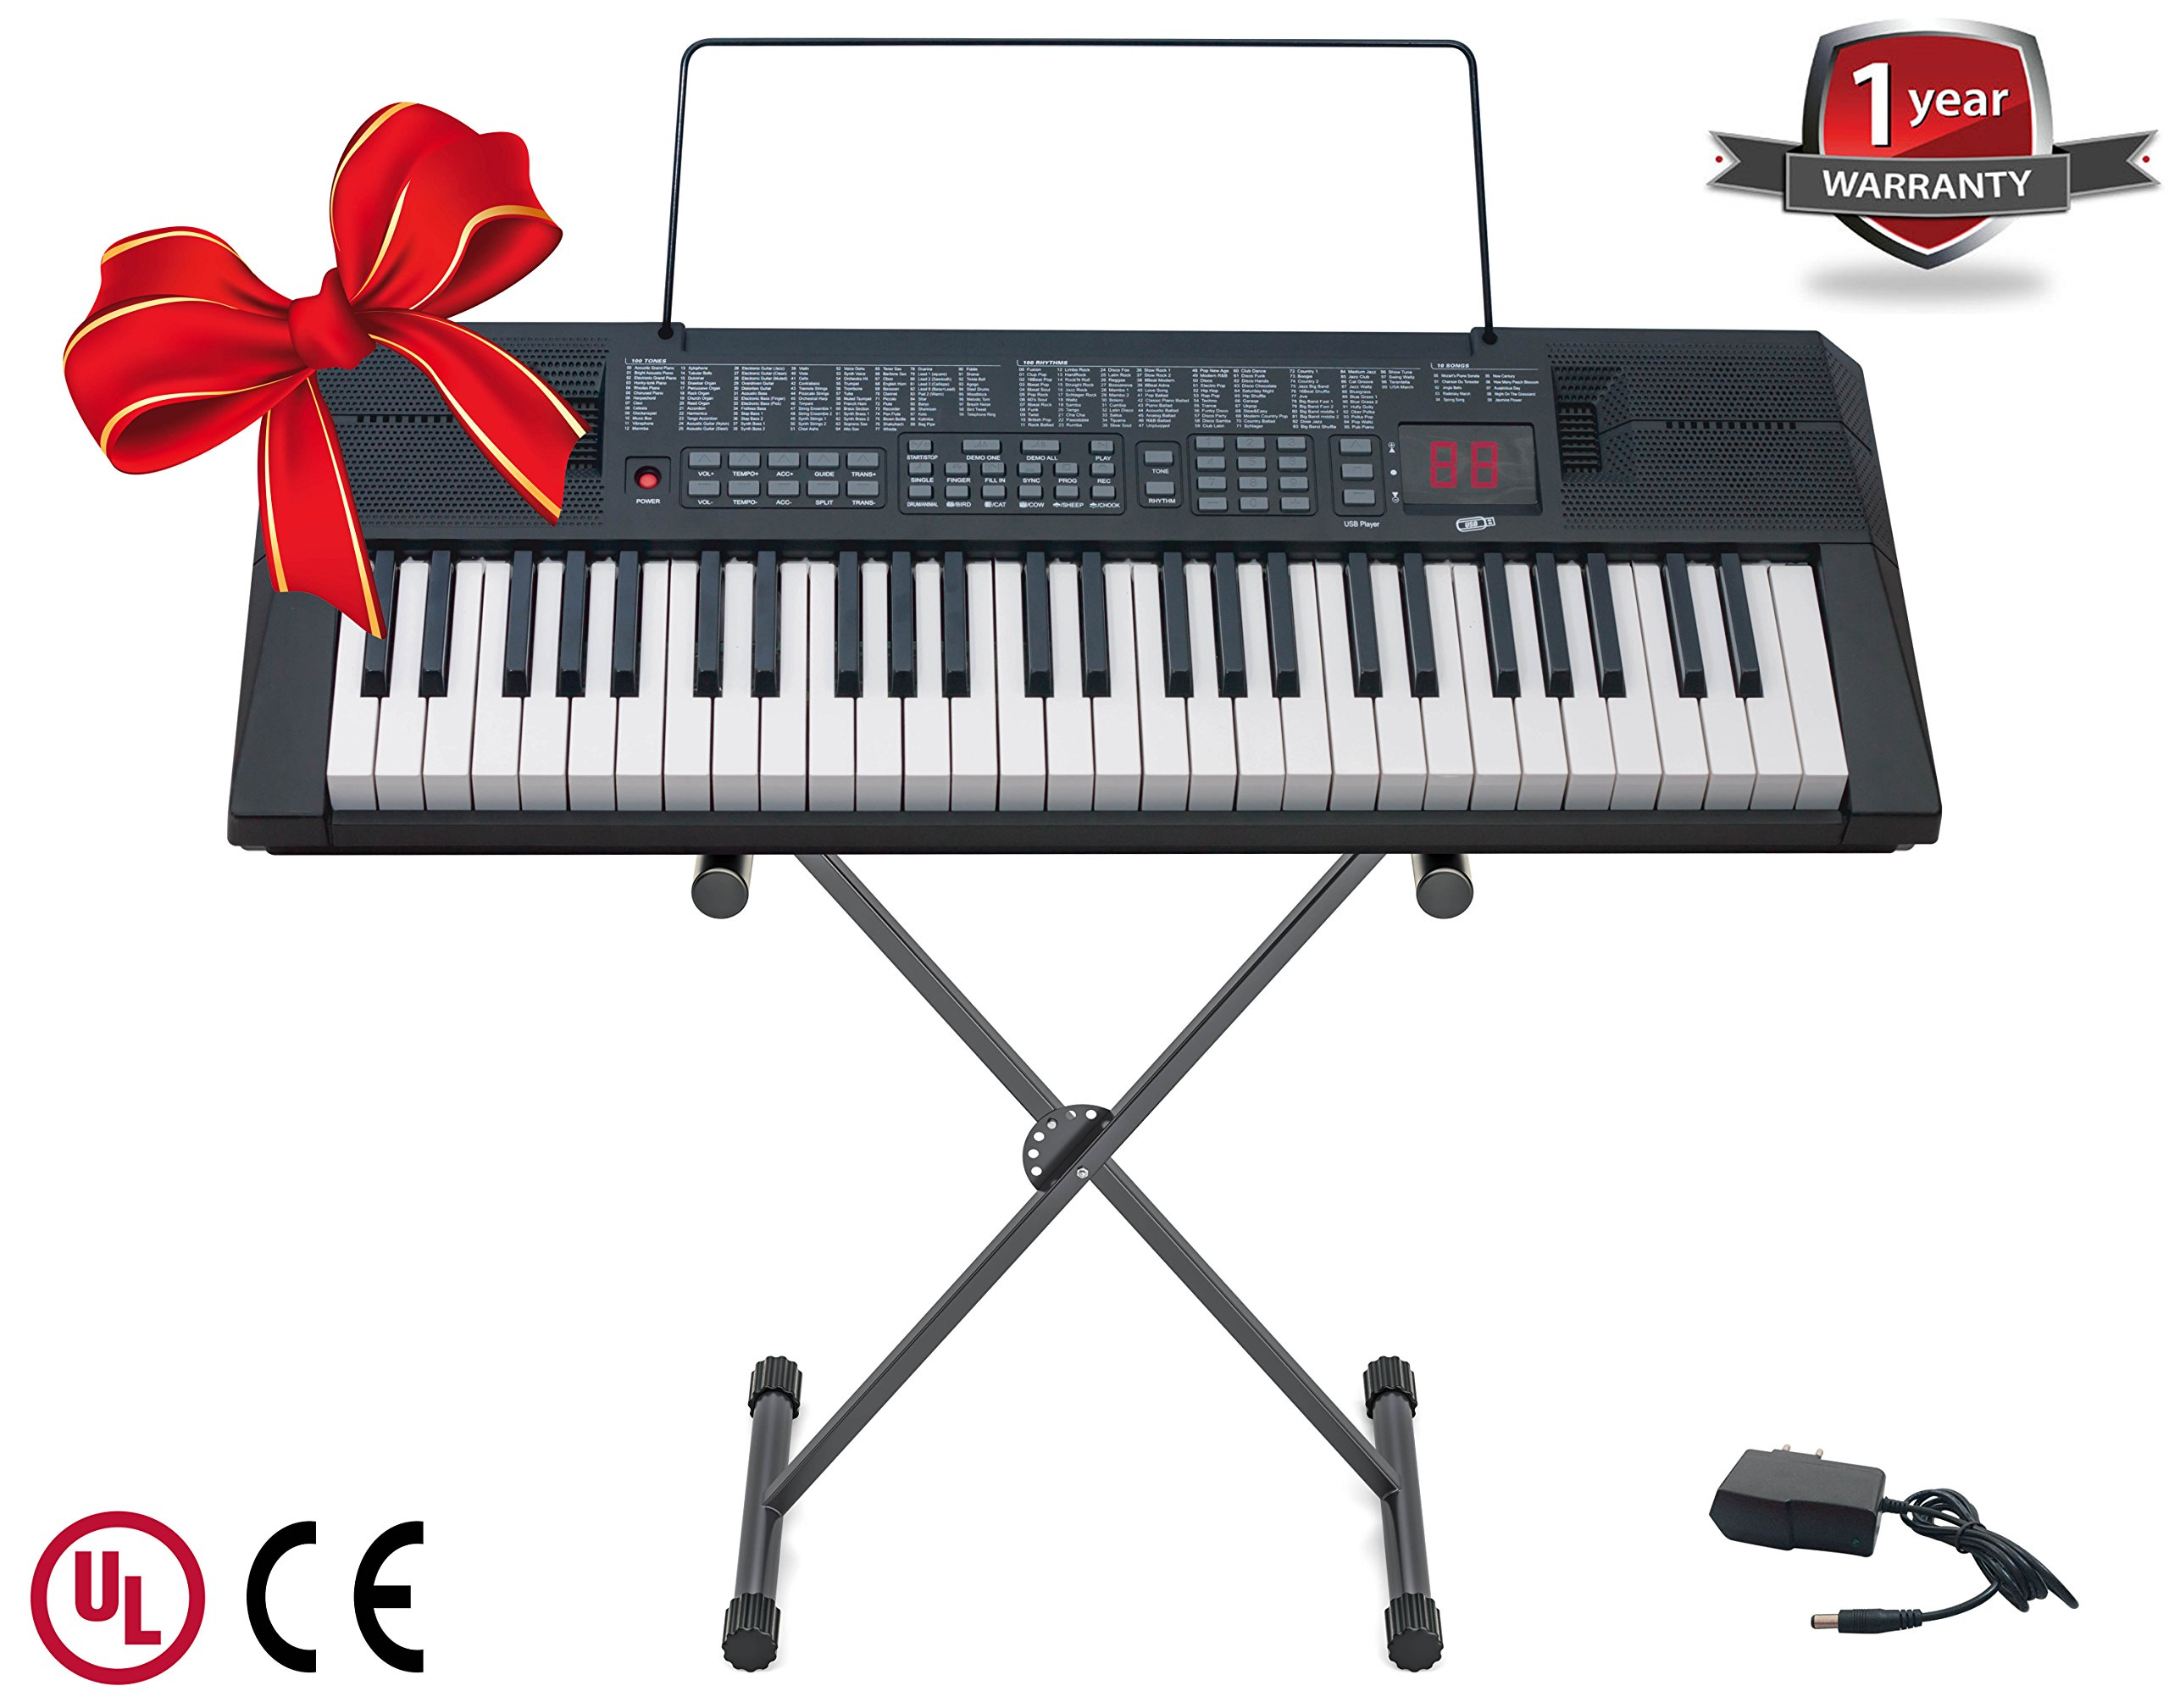 Tempi 54-Key Keyboard for Piano Players with Stand and UL Approved Power Supply